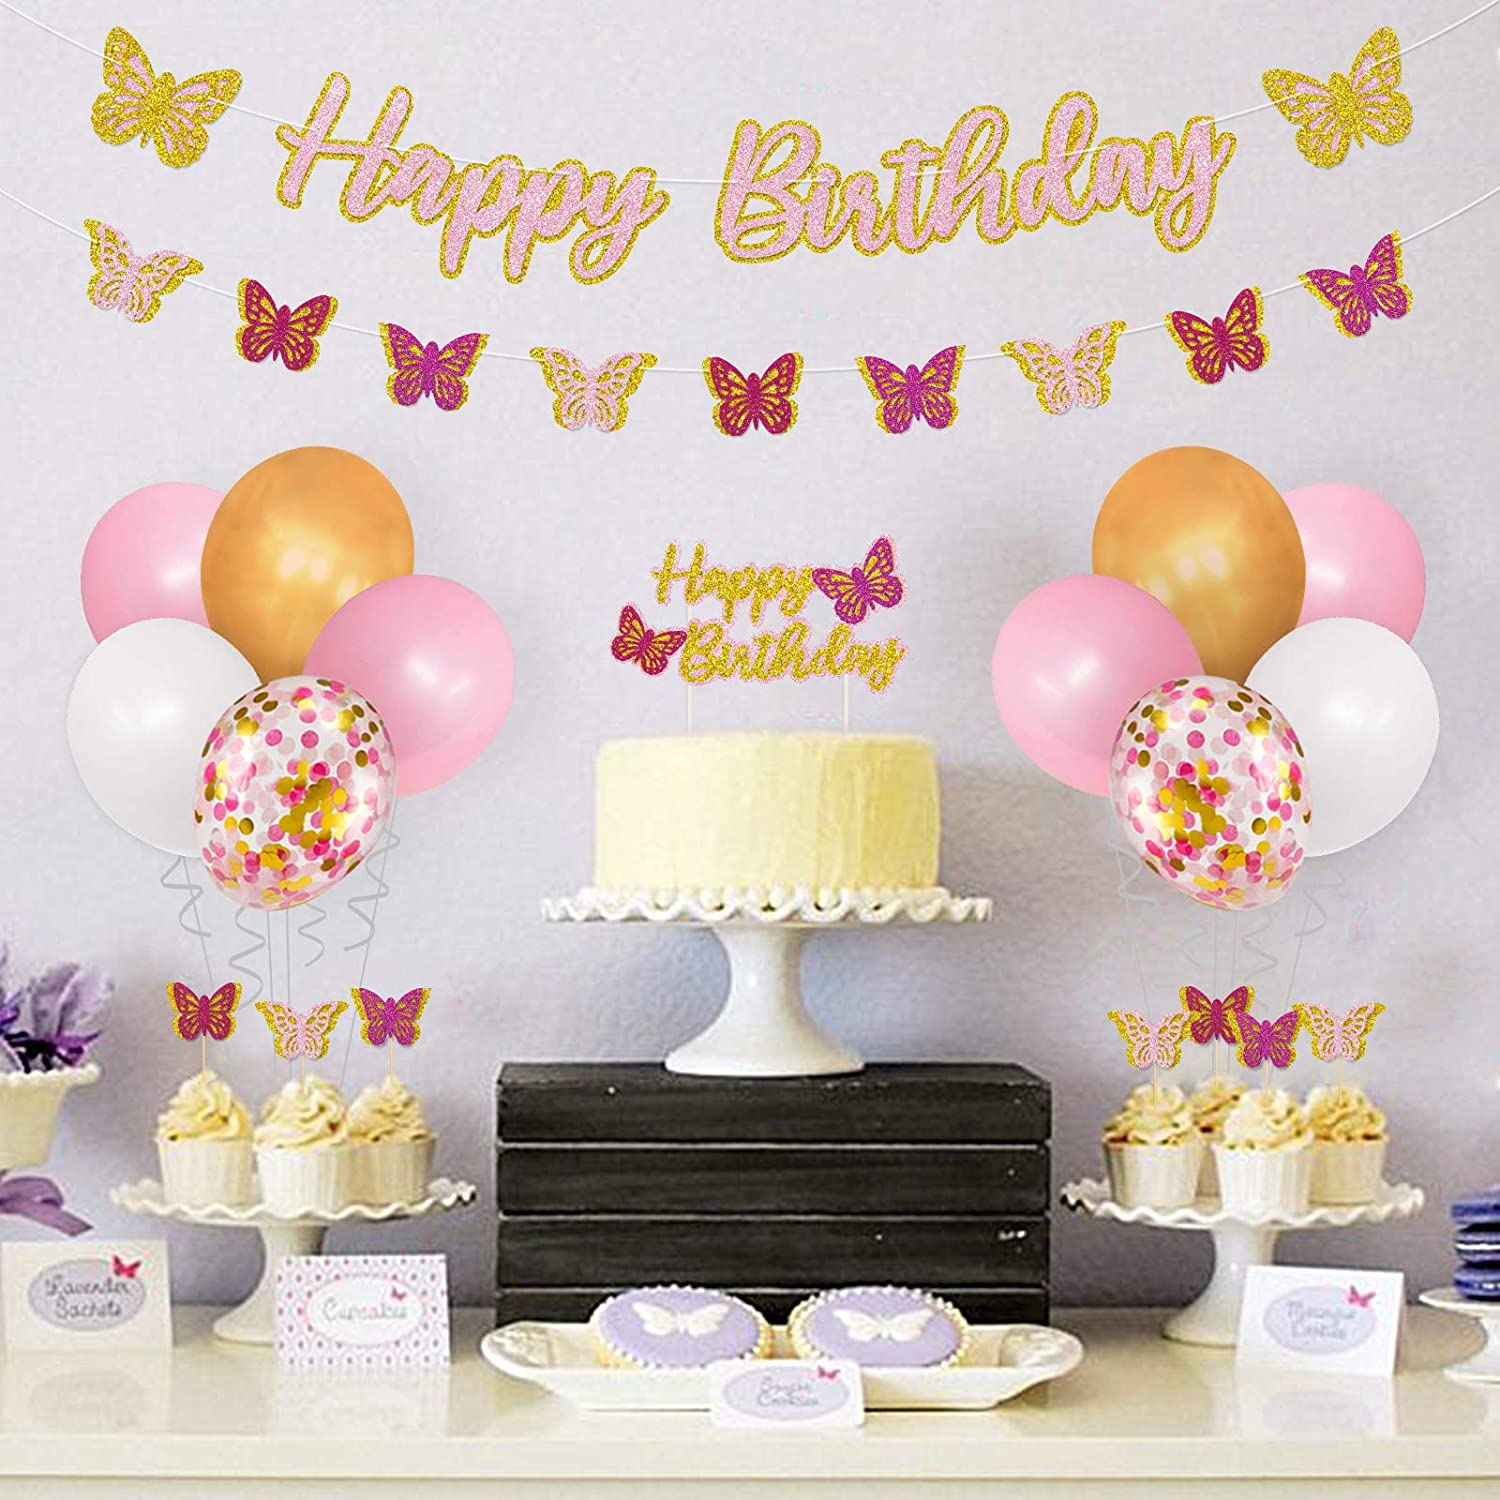 Butterfly Birthday Party Decorations Kit Spring Butterfly Happy Birthday Banner Glittery 3D Butterfly Garland Cake Topper Cupcake Toppers Pink Party Balloons for Girls Fairy Butterfly Photo Props Backdrop Supplies